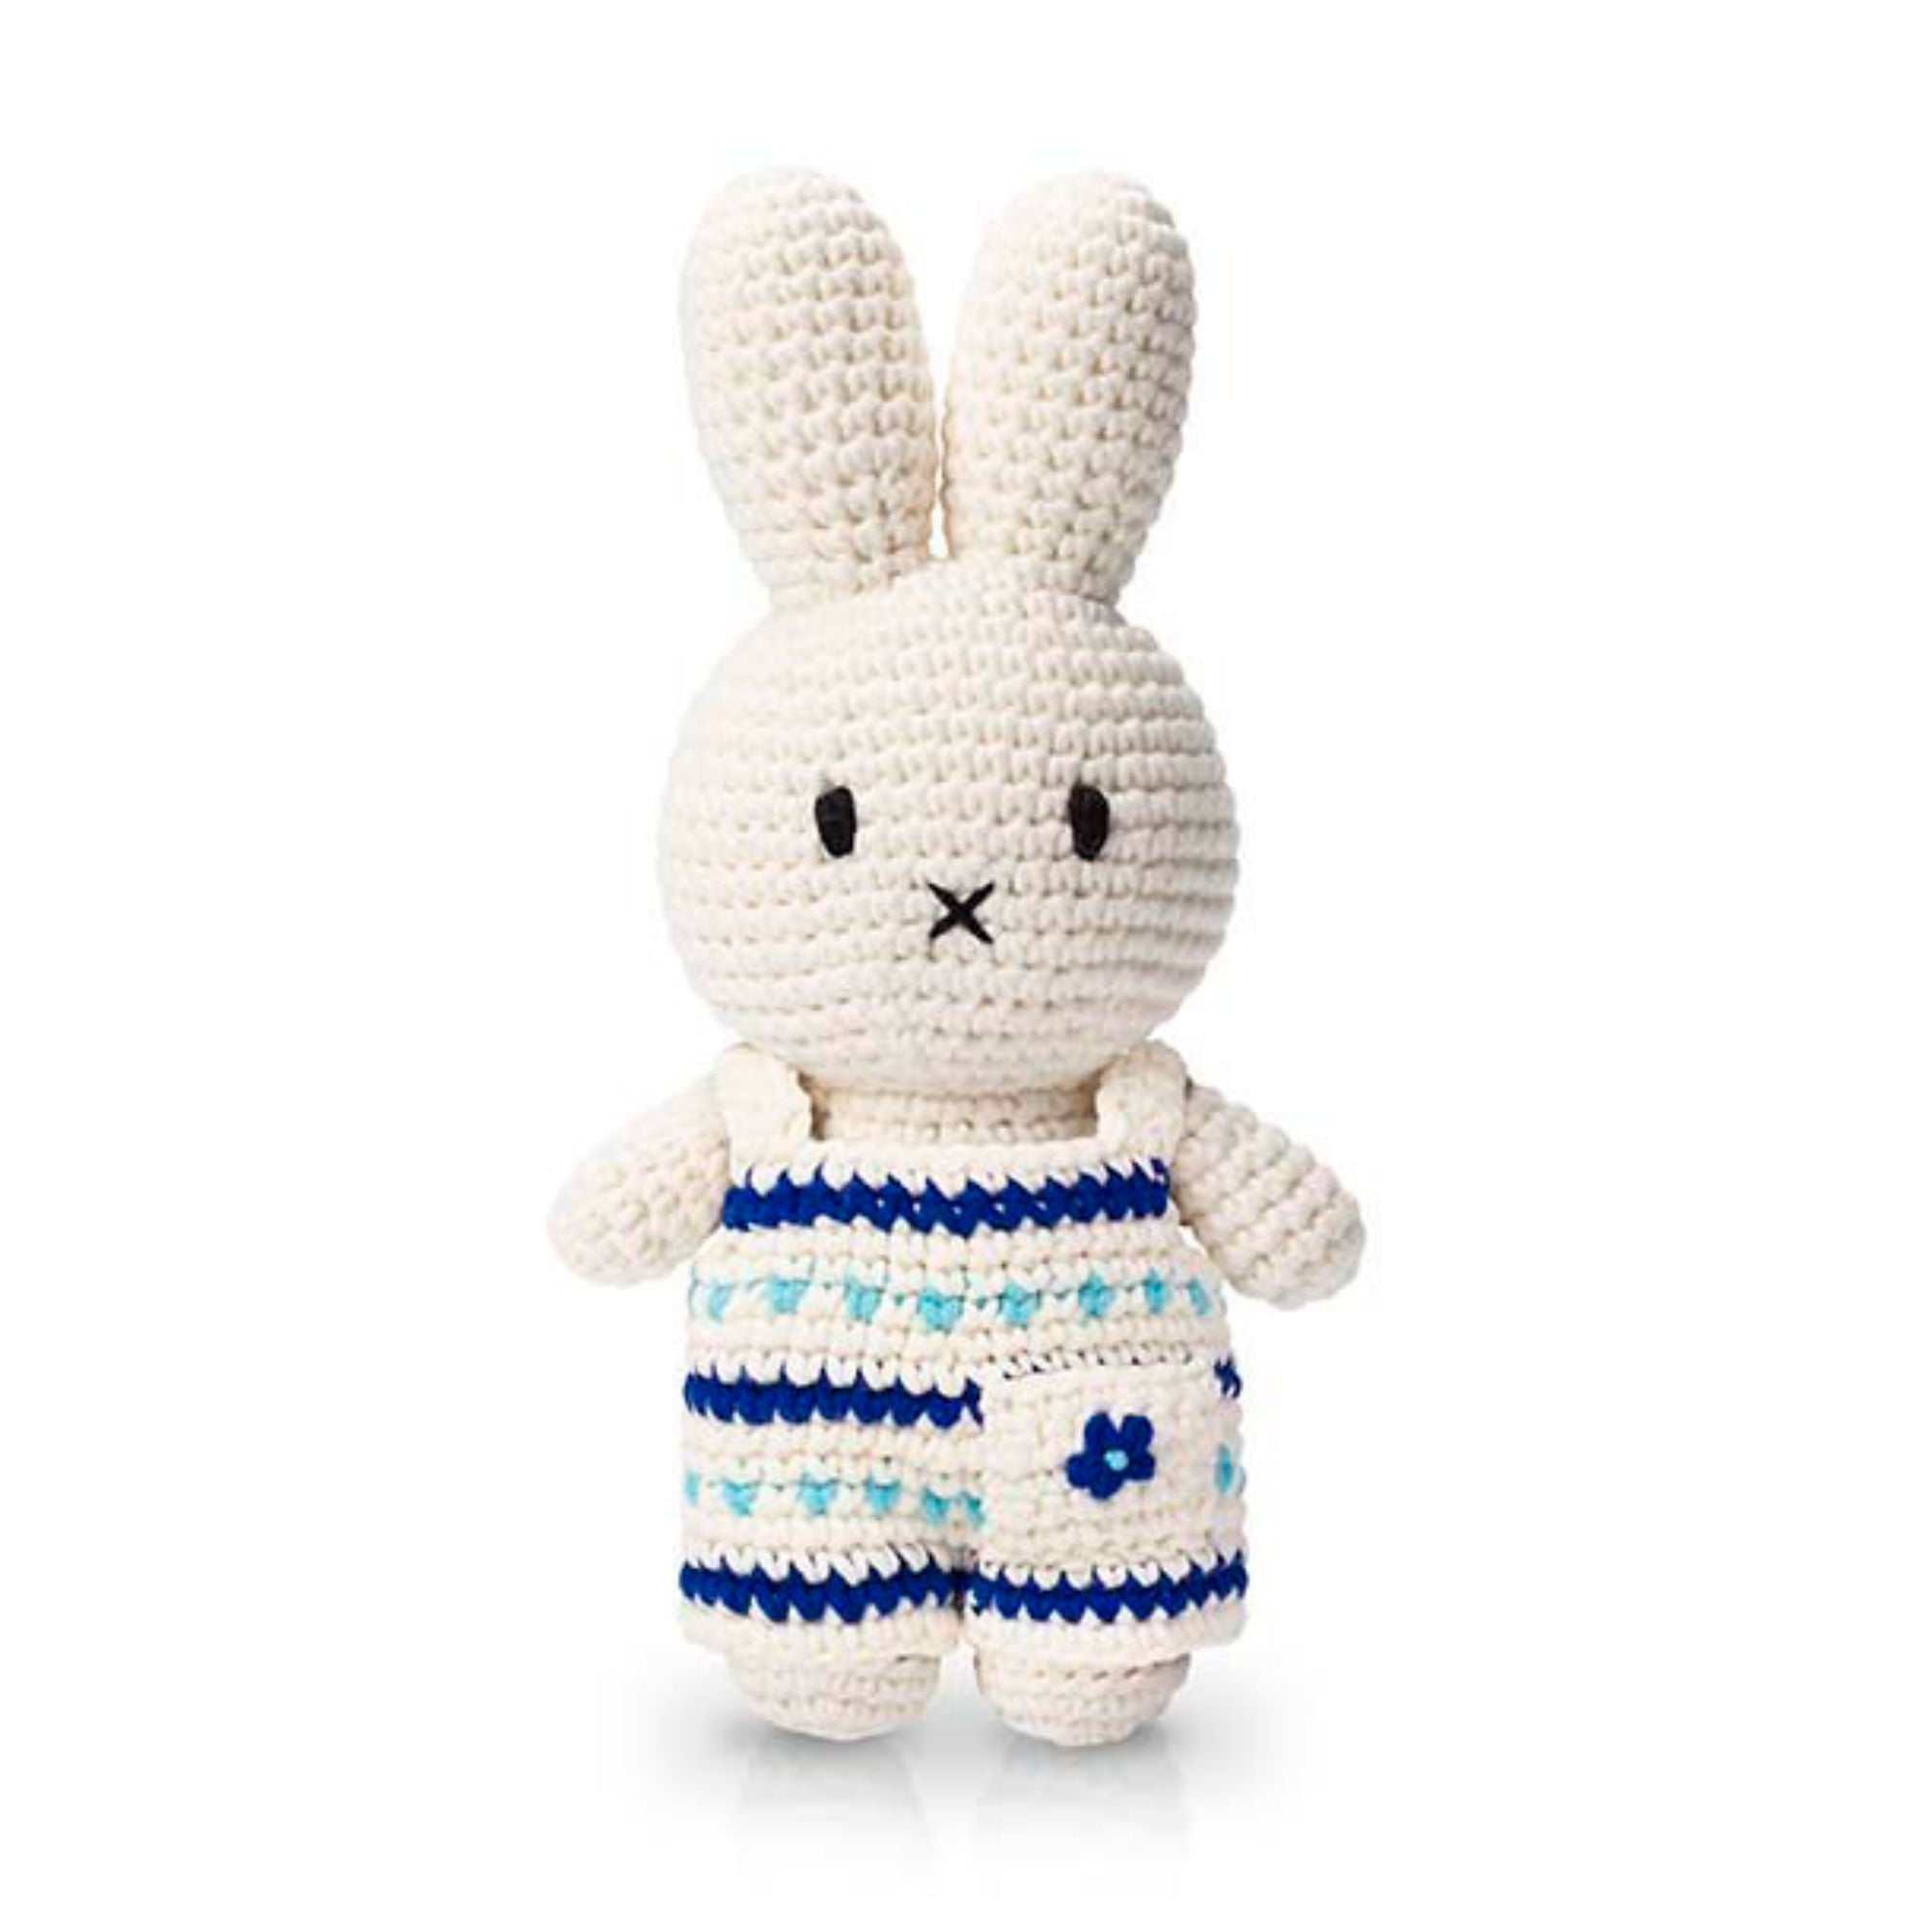 Just Dutch Handmade Dolls, Miffy and her new delft blue overall